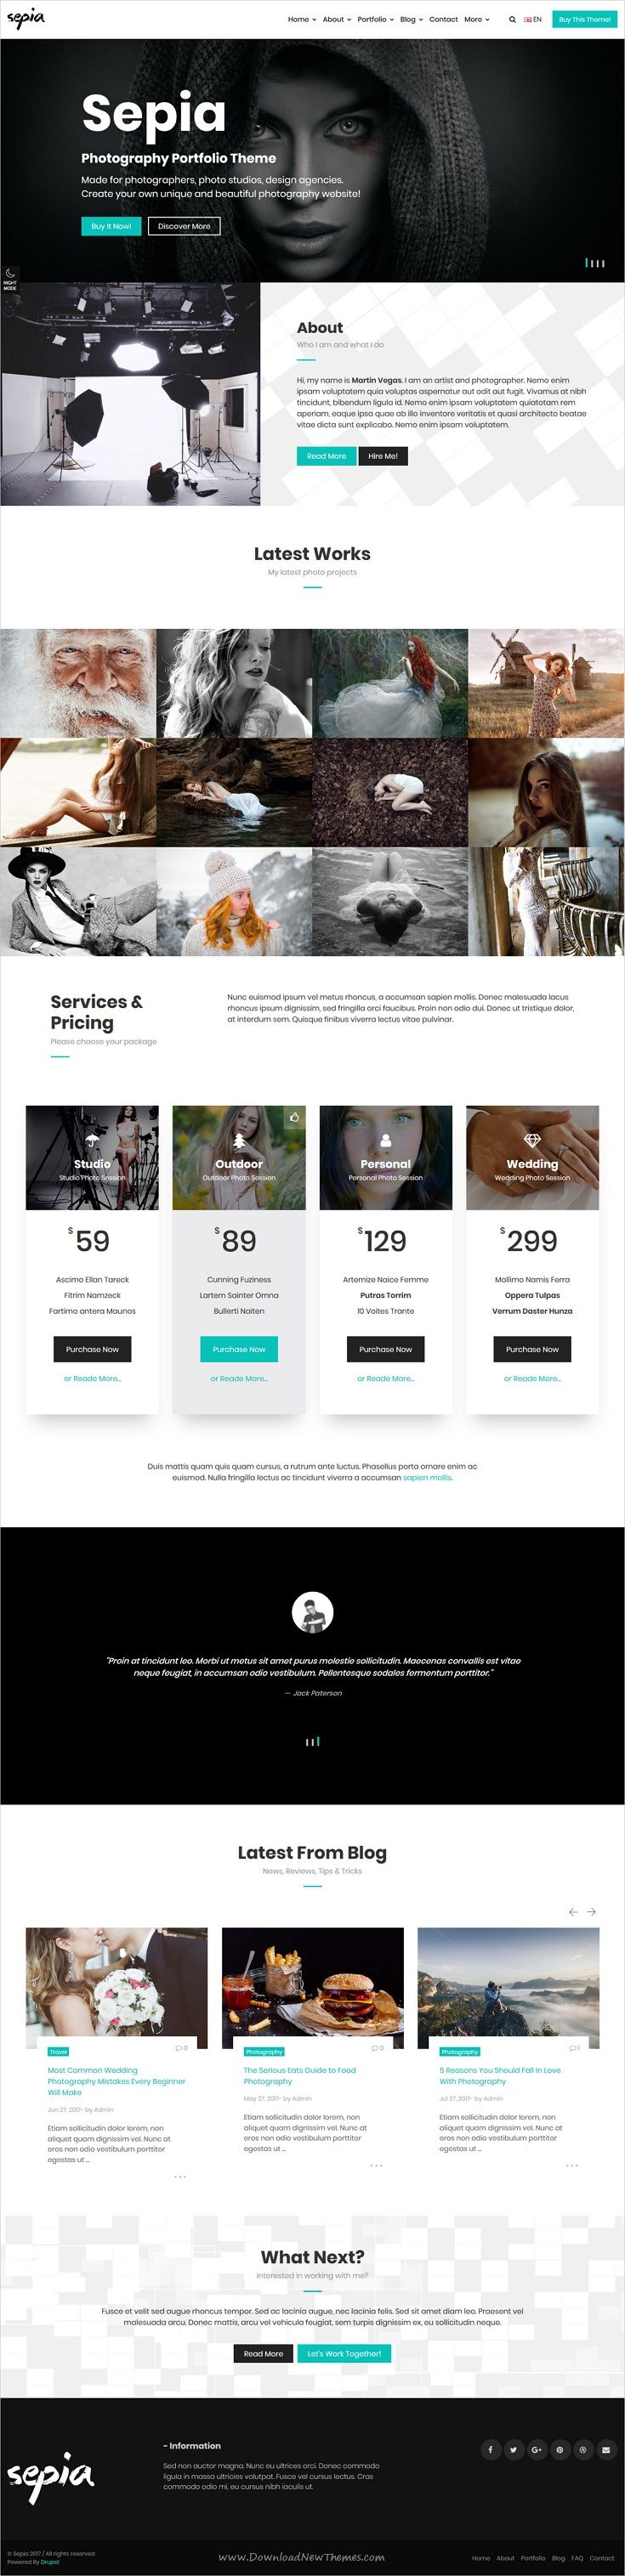 Sepia is clean and modern design responsive #Drupal theme for stunning #photography and #portfolio showcase website download now..